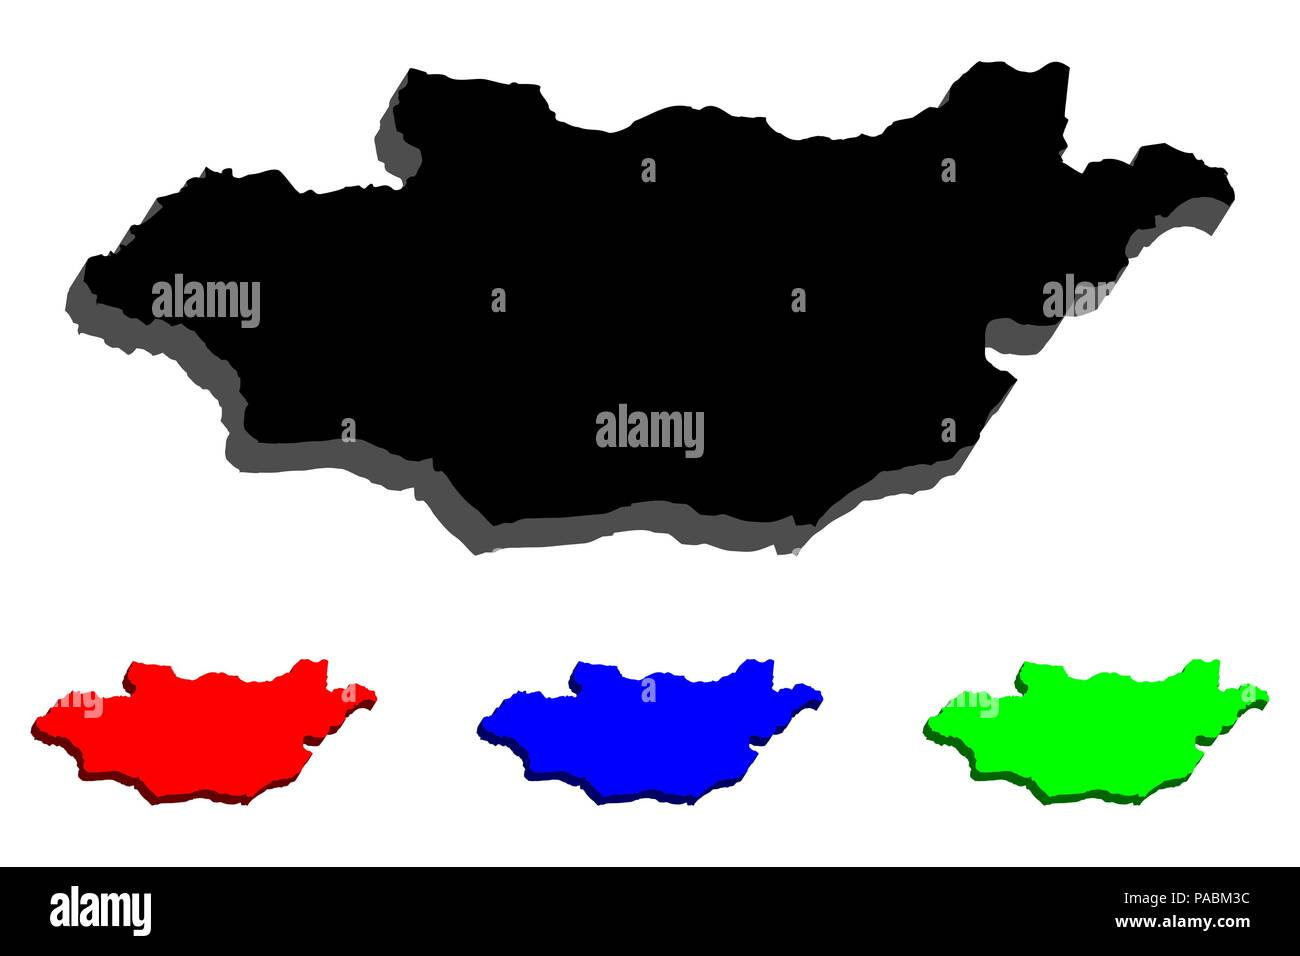 3D map of Nepal Mongolia - black, red, blue and green - vector illustration - Stock Vector